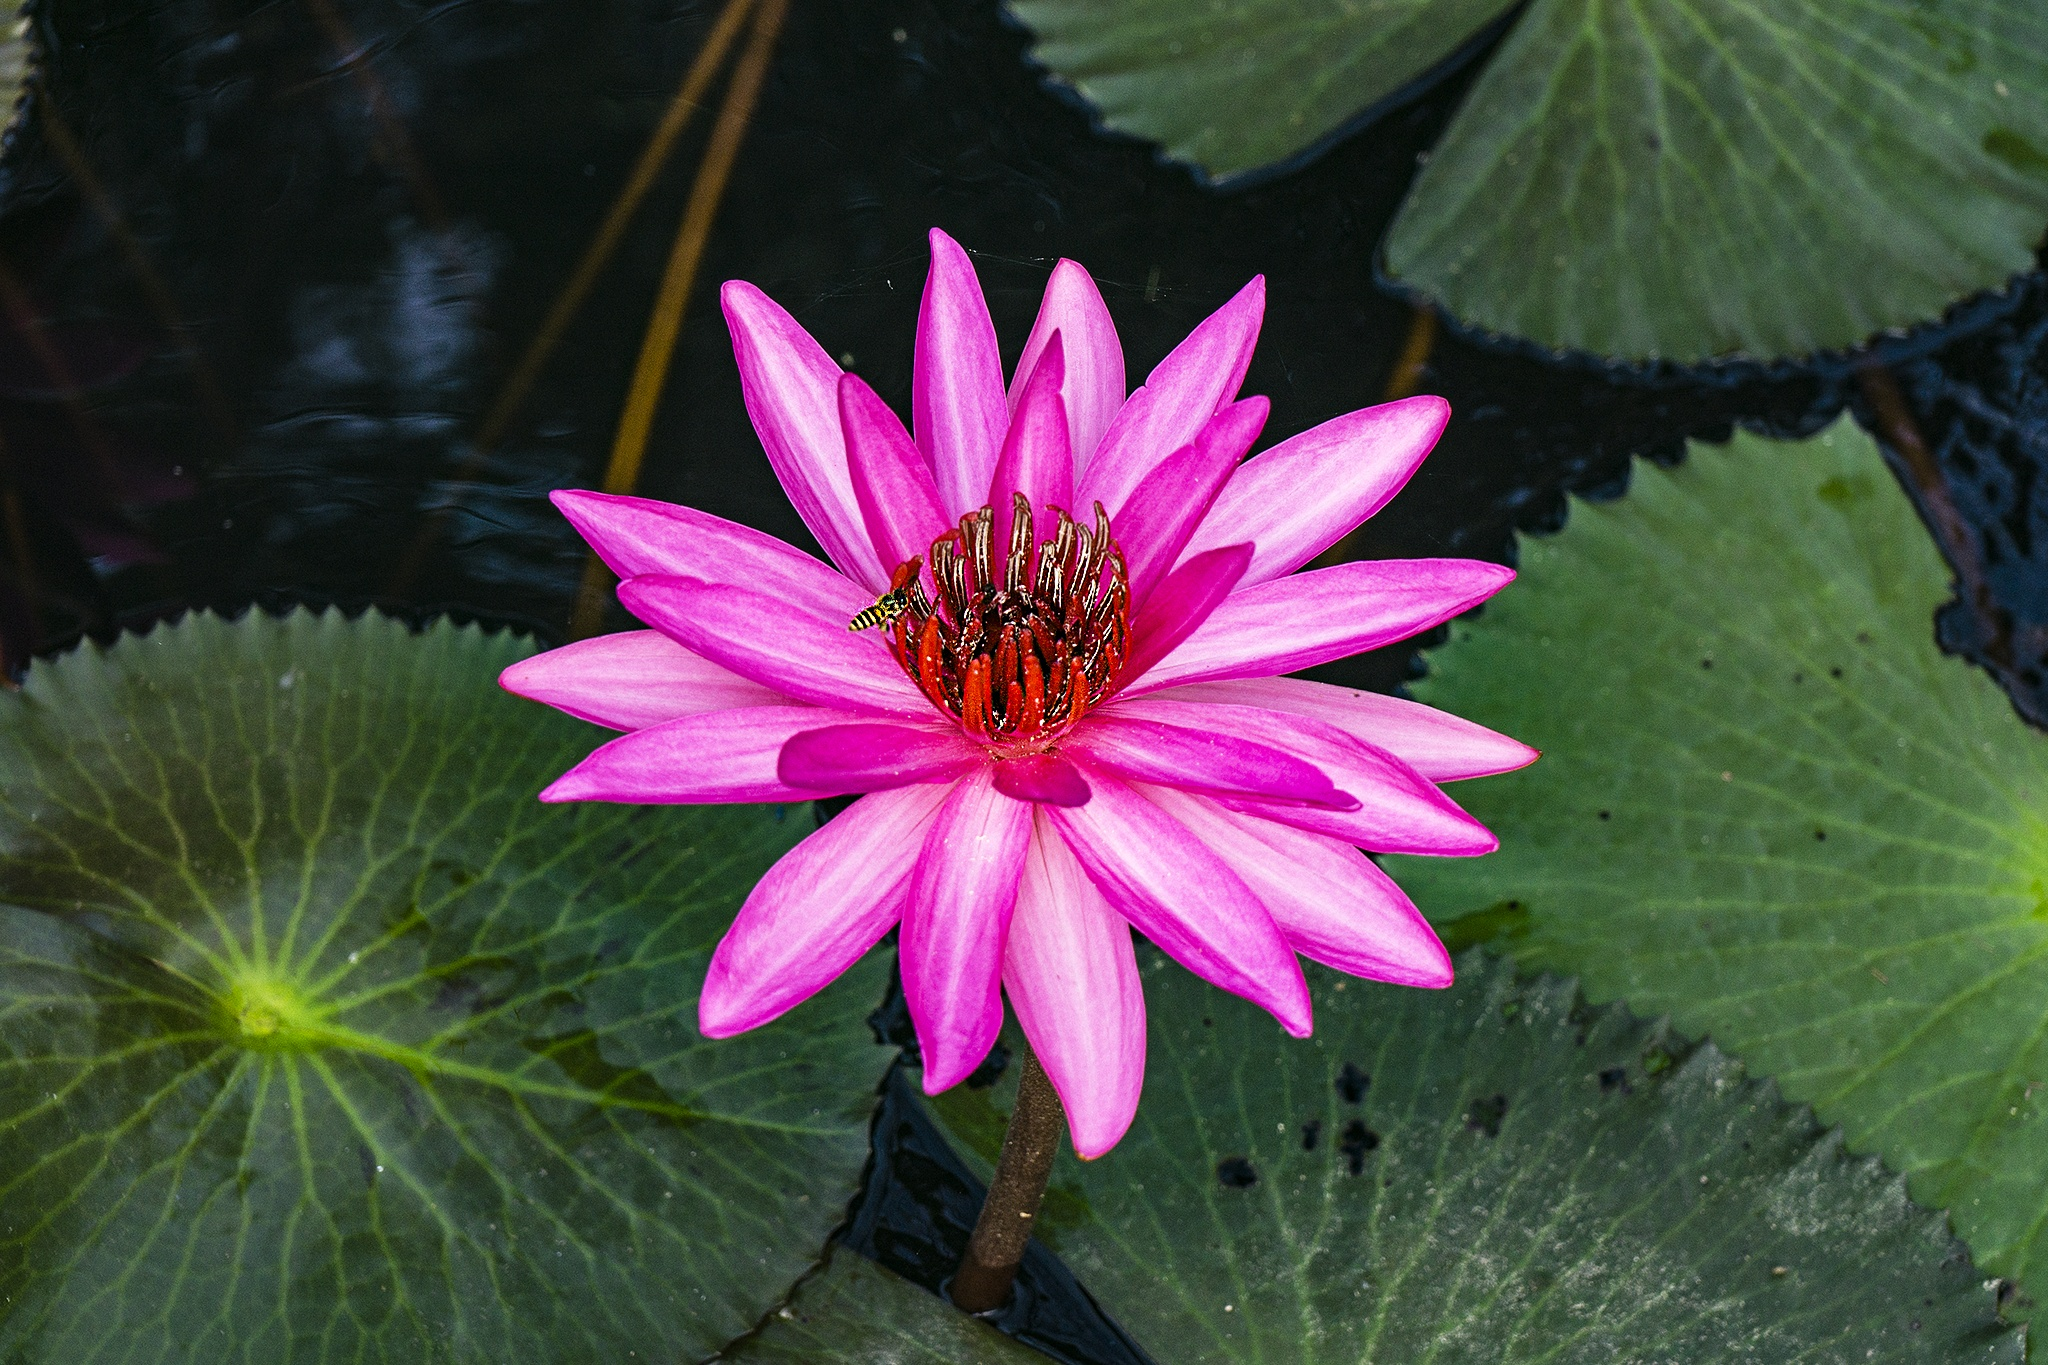 Waterlily flower by Nguyet Le